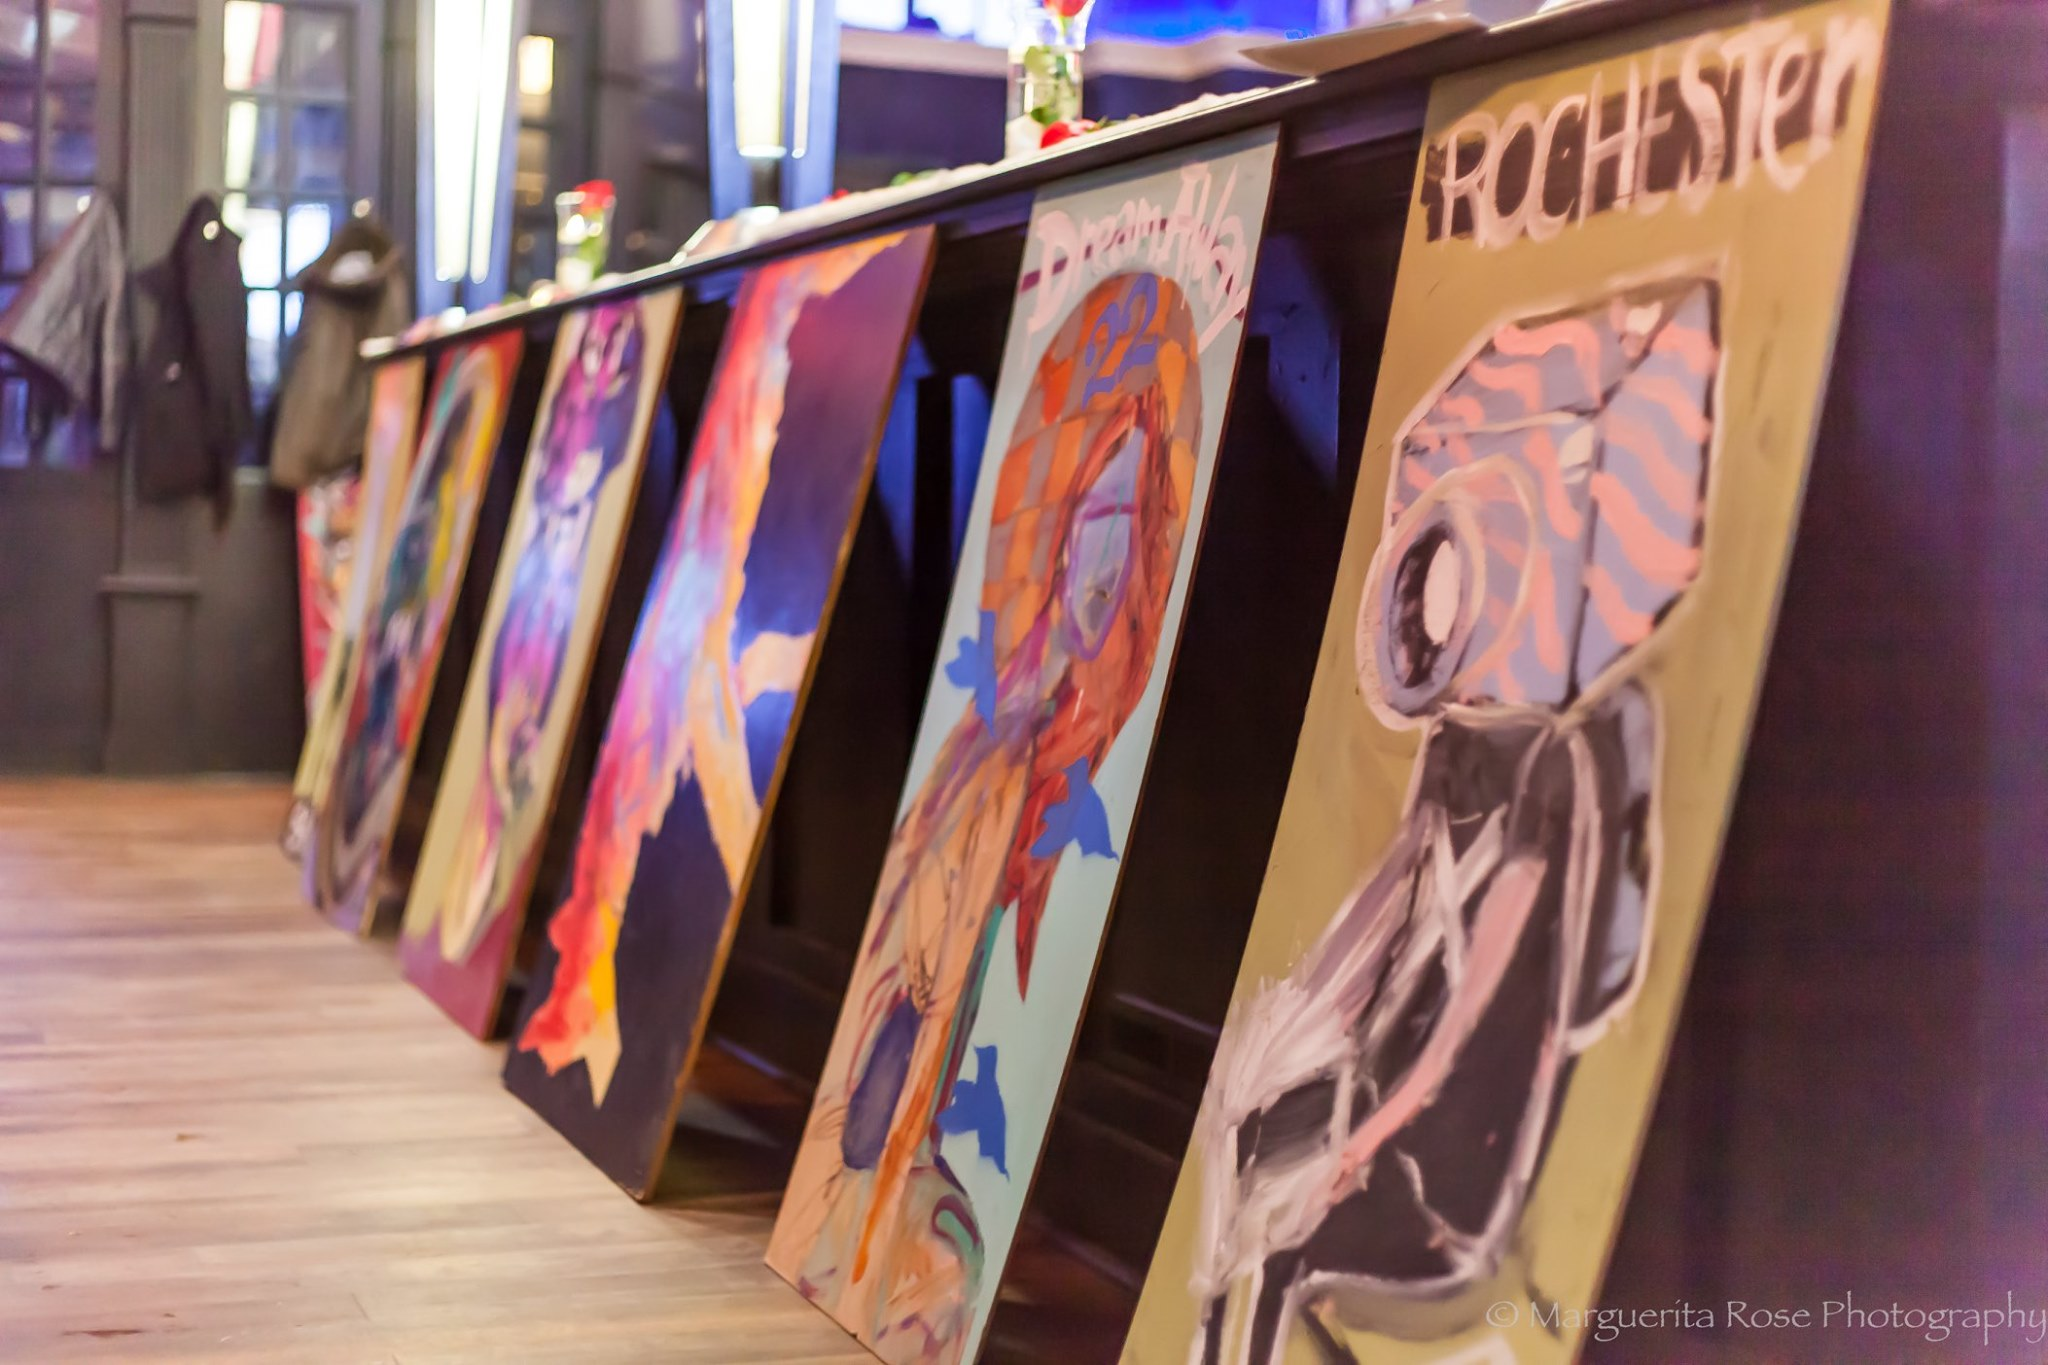 A group of paintings lined up against the bottom of the bar.